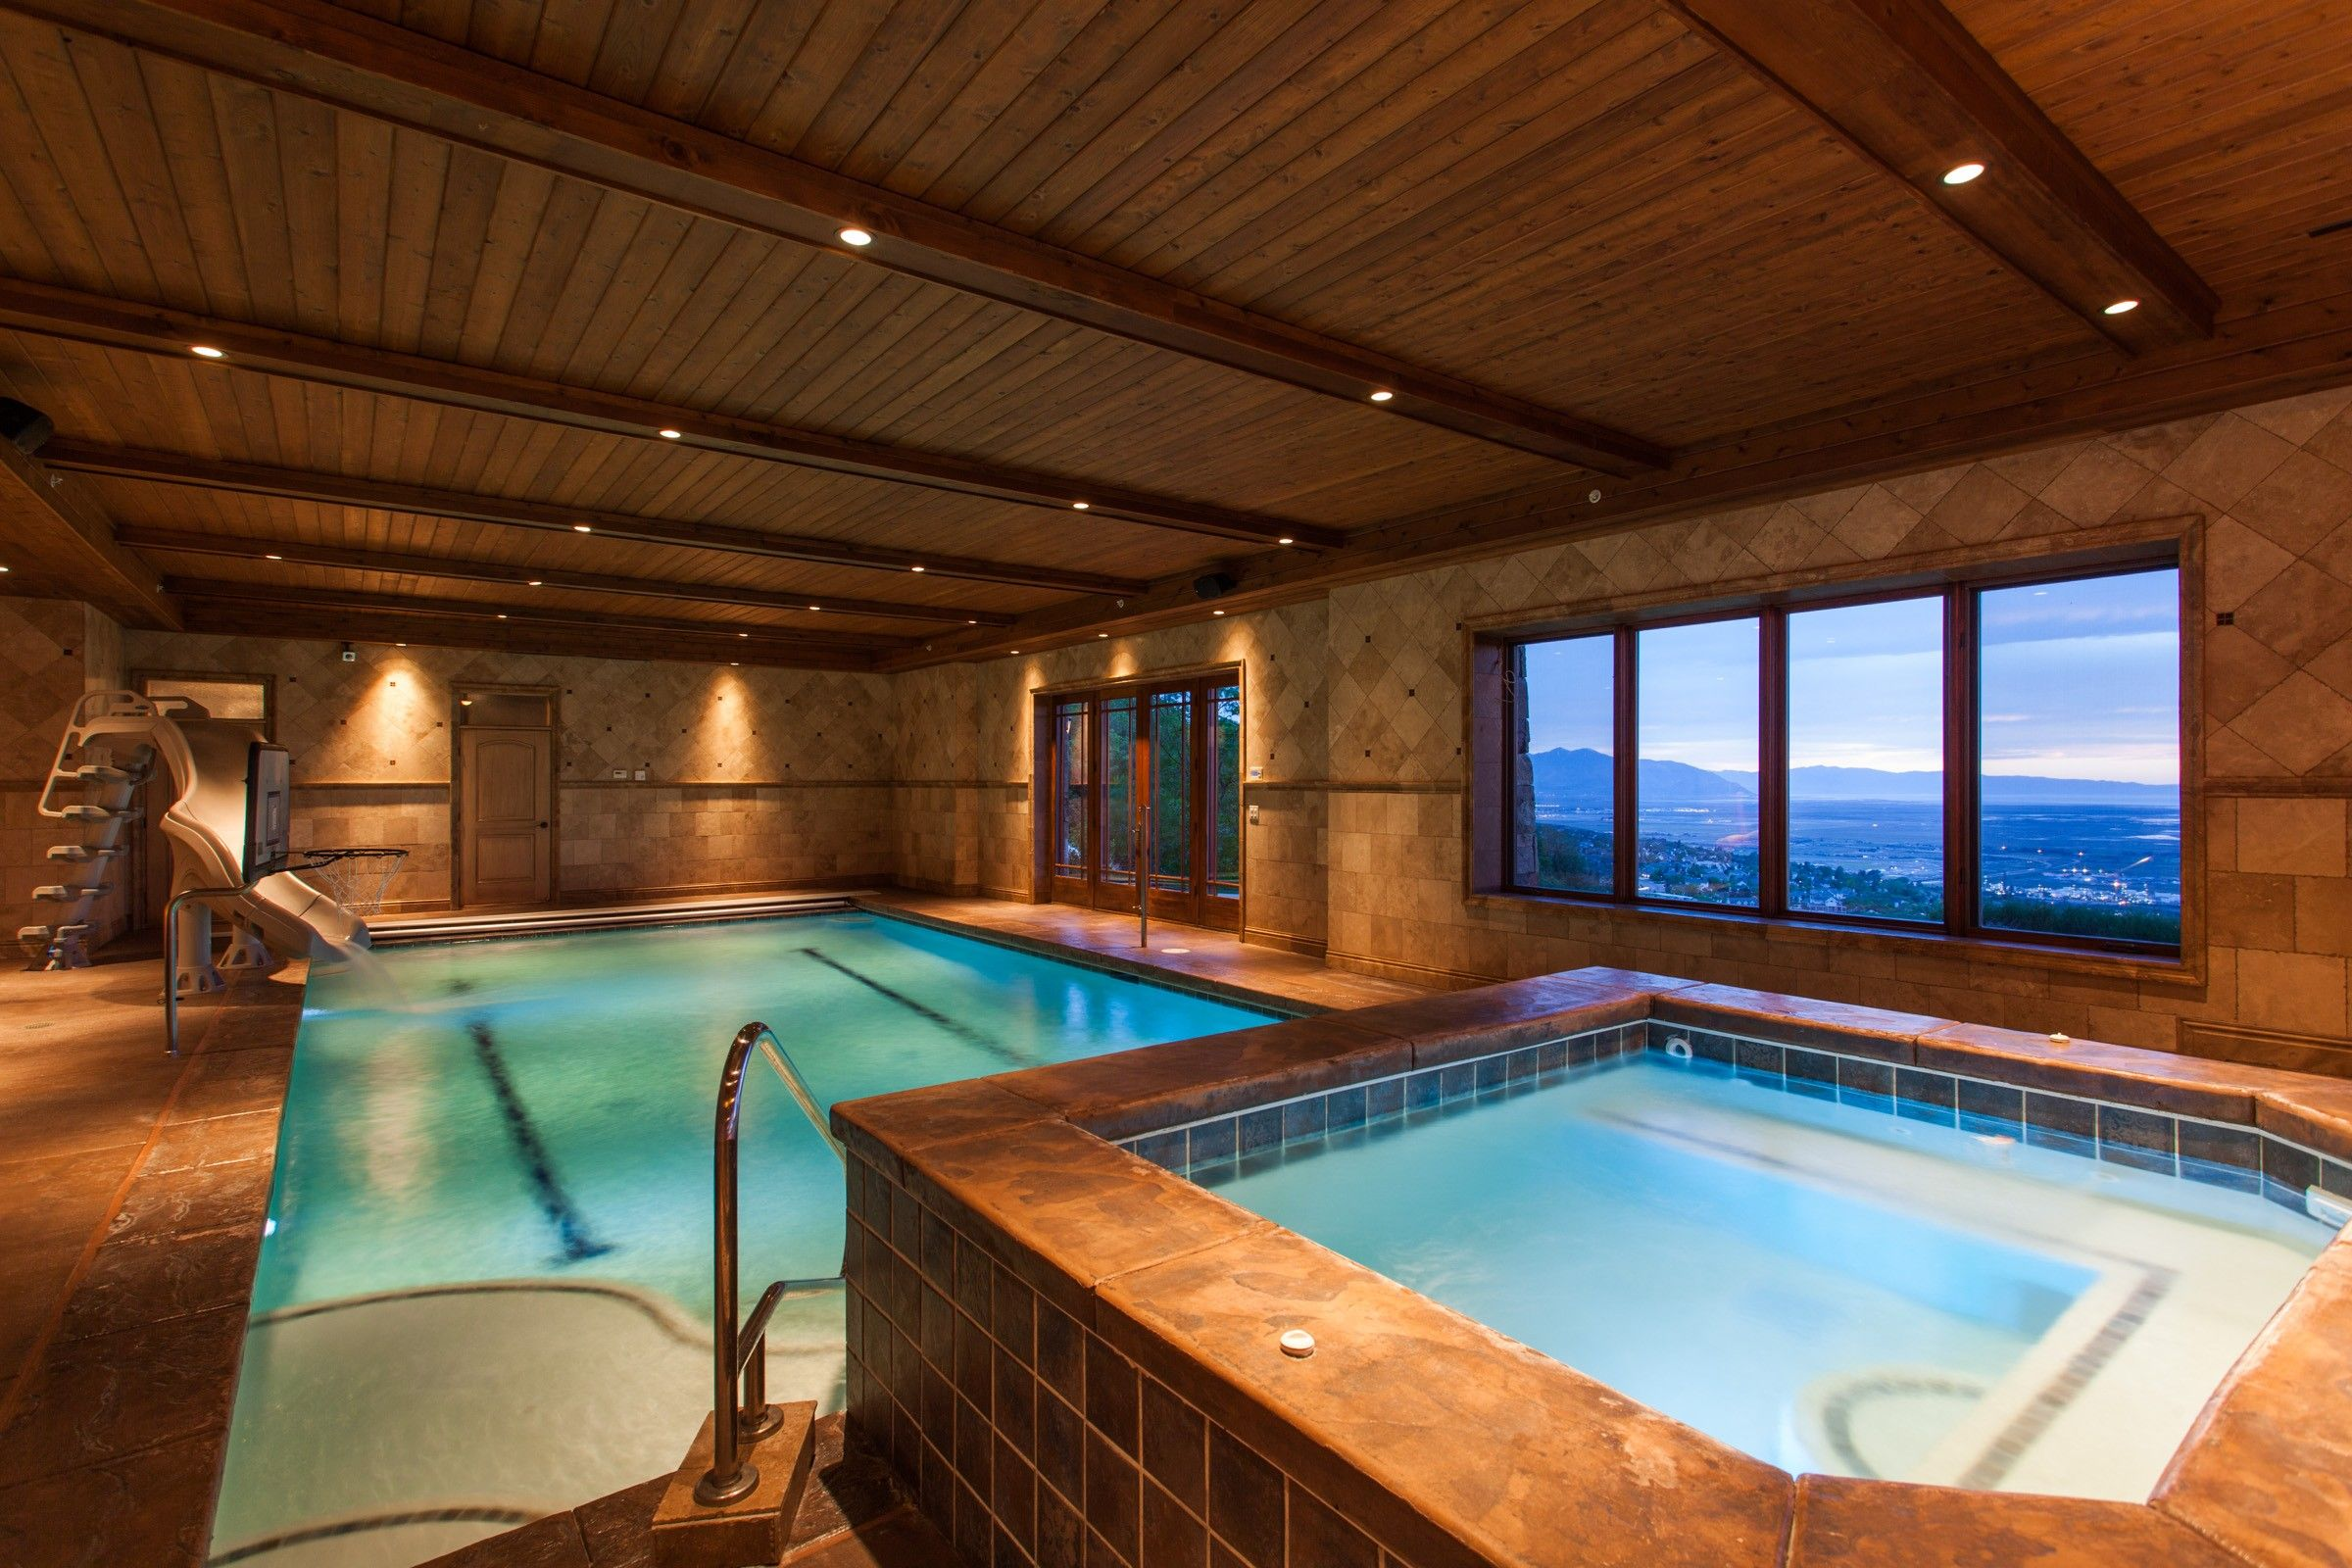 new indoor pool goche ganas gocheganas private nature reserve wellness village pinterest indoor pools and mountains